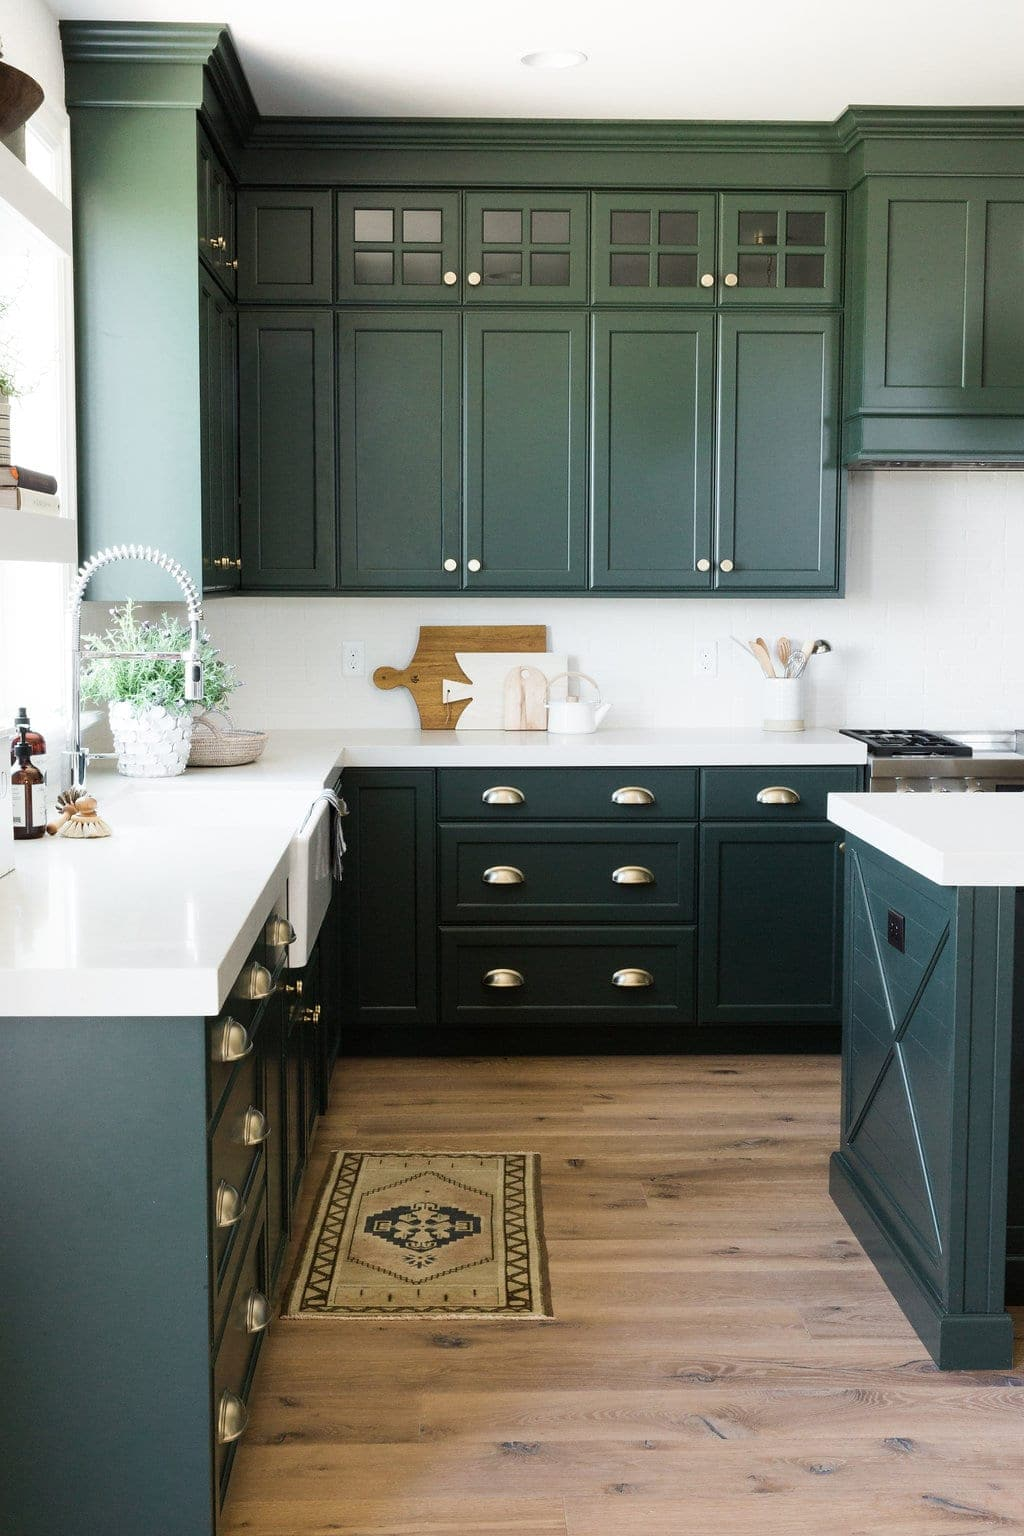 green kitchen cabinet inspiration bless 39 er house. Black Bedroom Furniture Sets. Home Design Ideas